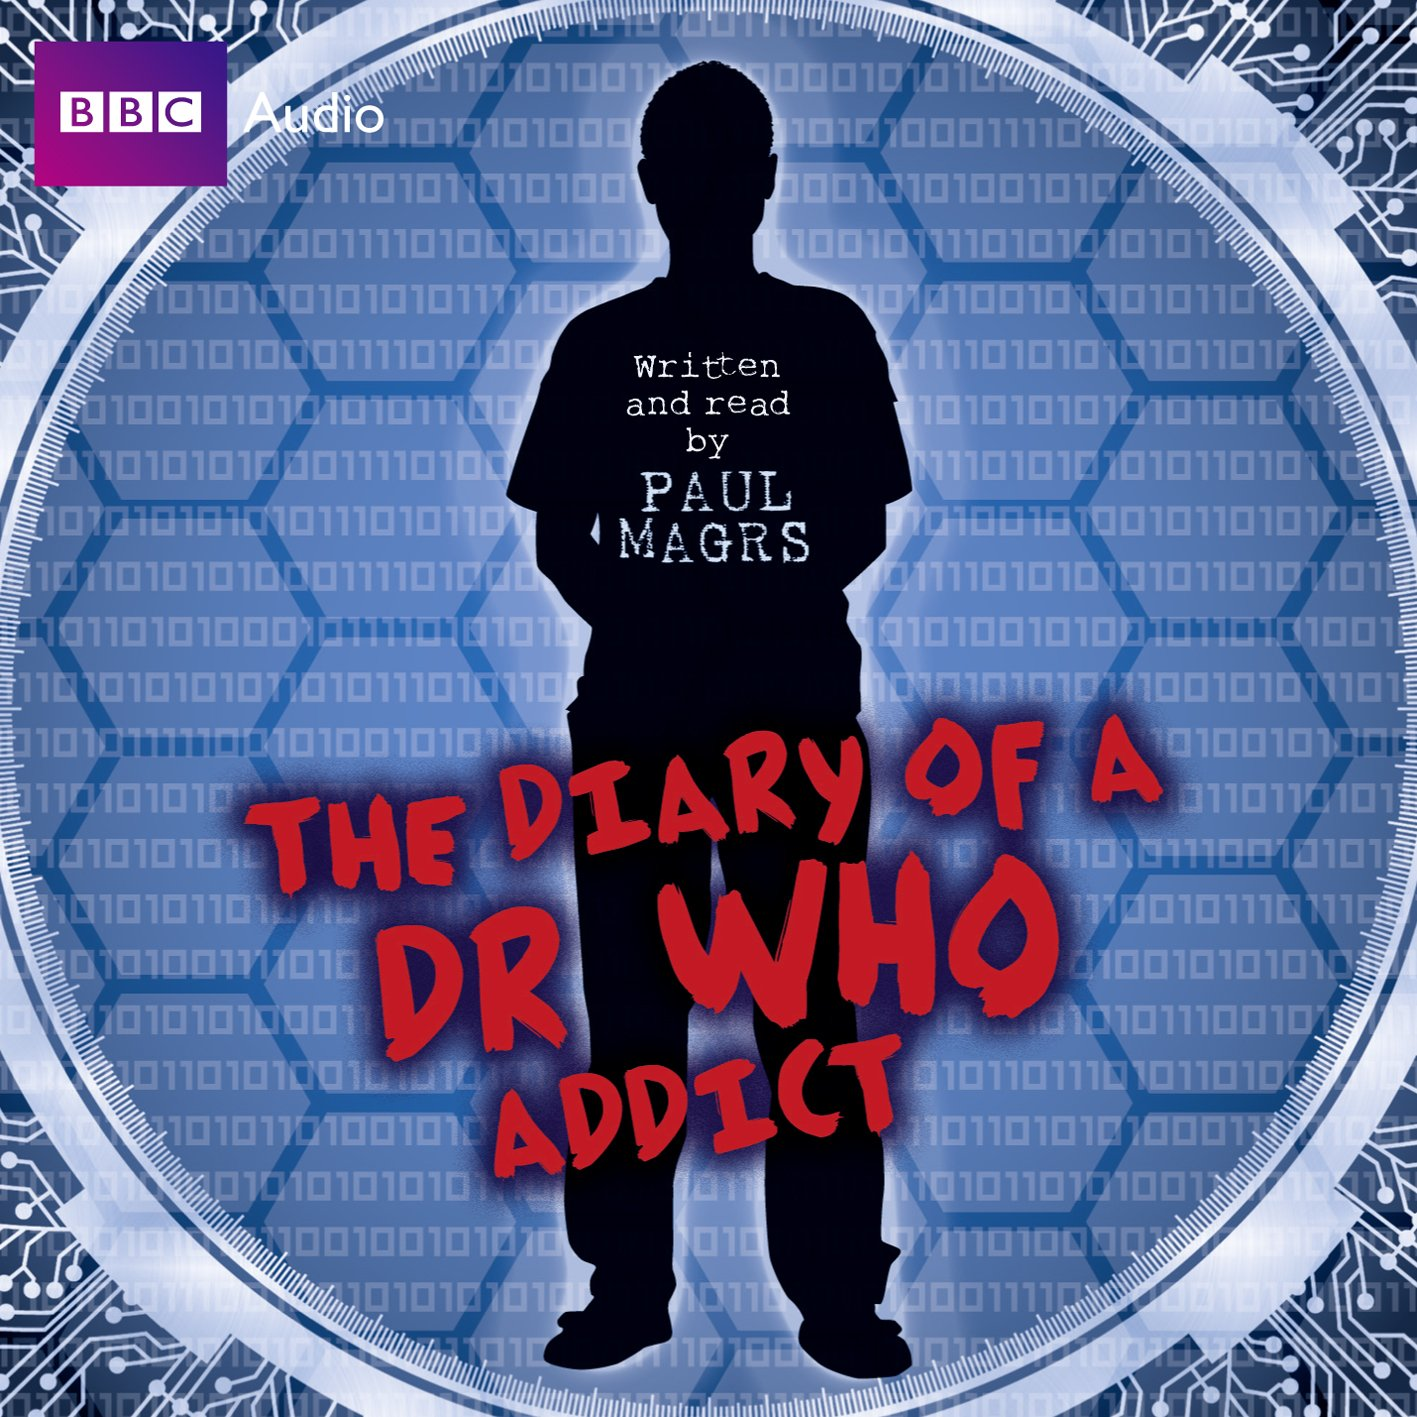 The Diary of a Dr Who Addict - Paul Magrs